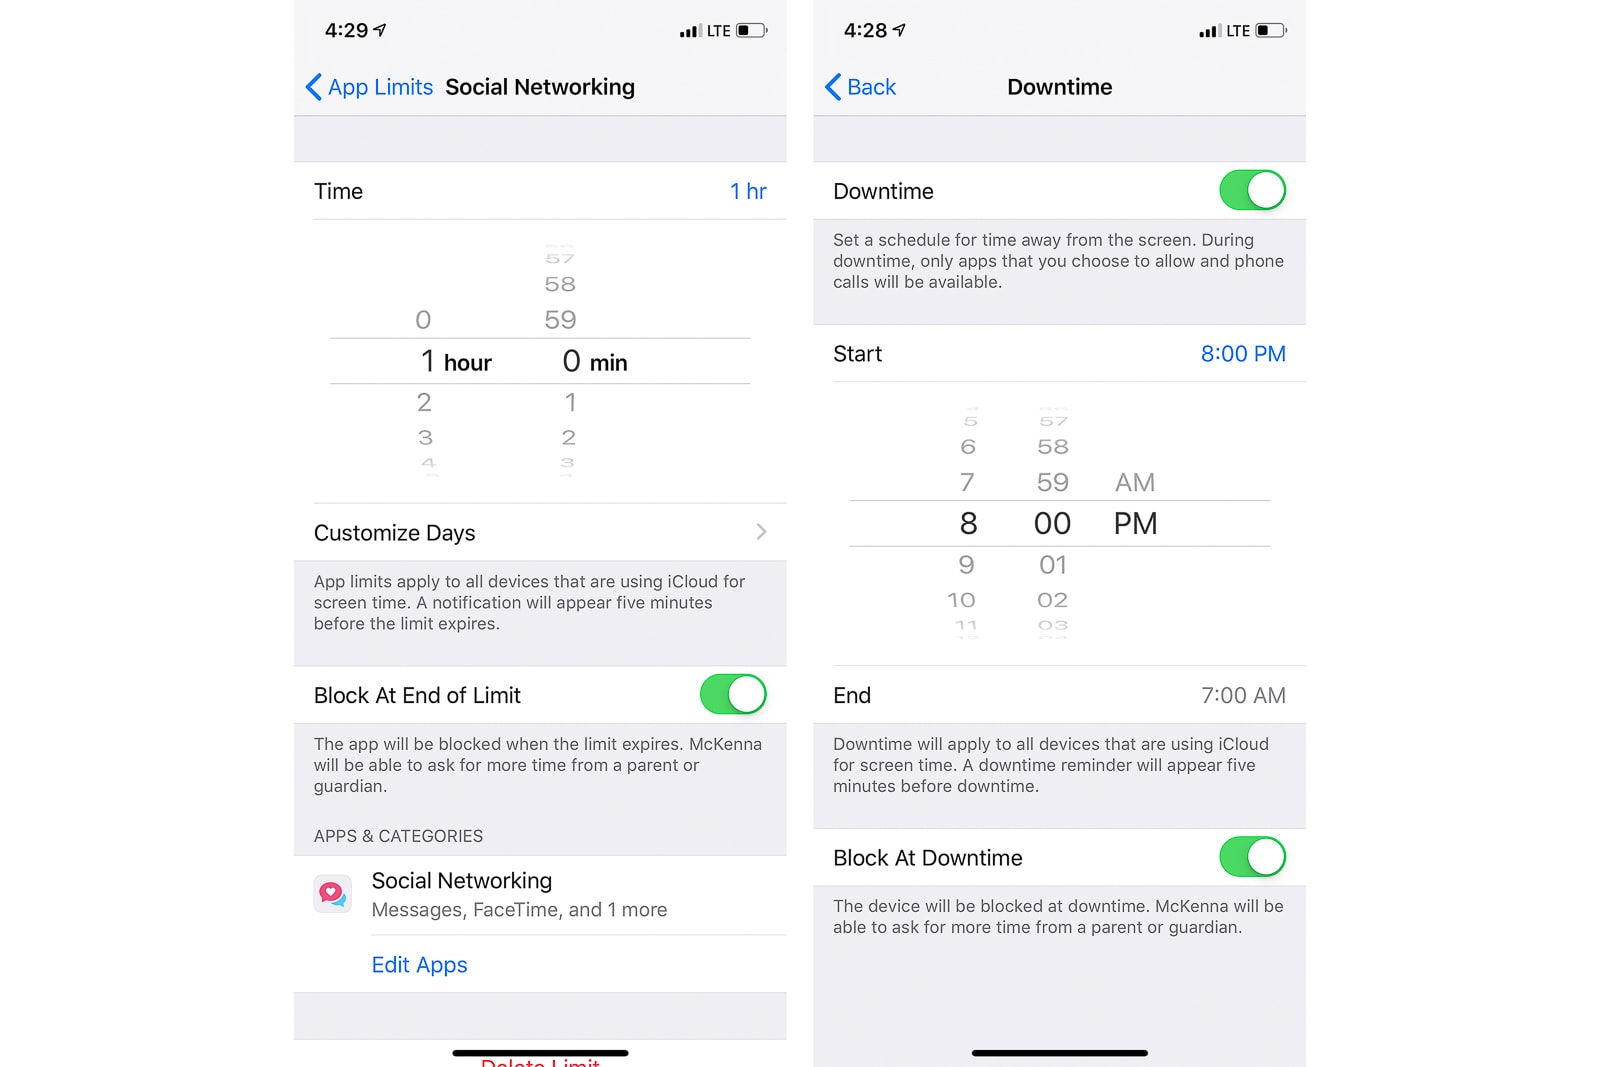 Apps for managing children's phones  - dims crop 1600 2C1067 2C0 2C0 quality 85 format jpg resize 1600 2C1067 image uri https 3A 2F 2Fs - The best apps for managing your kid's phone